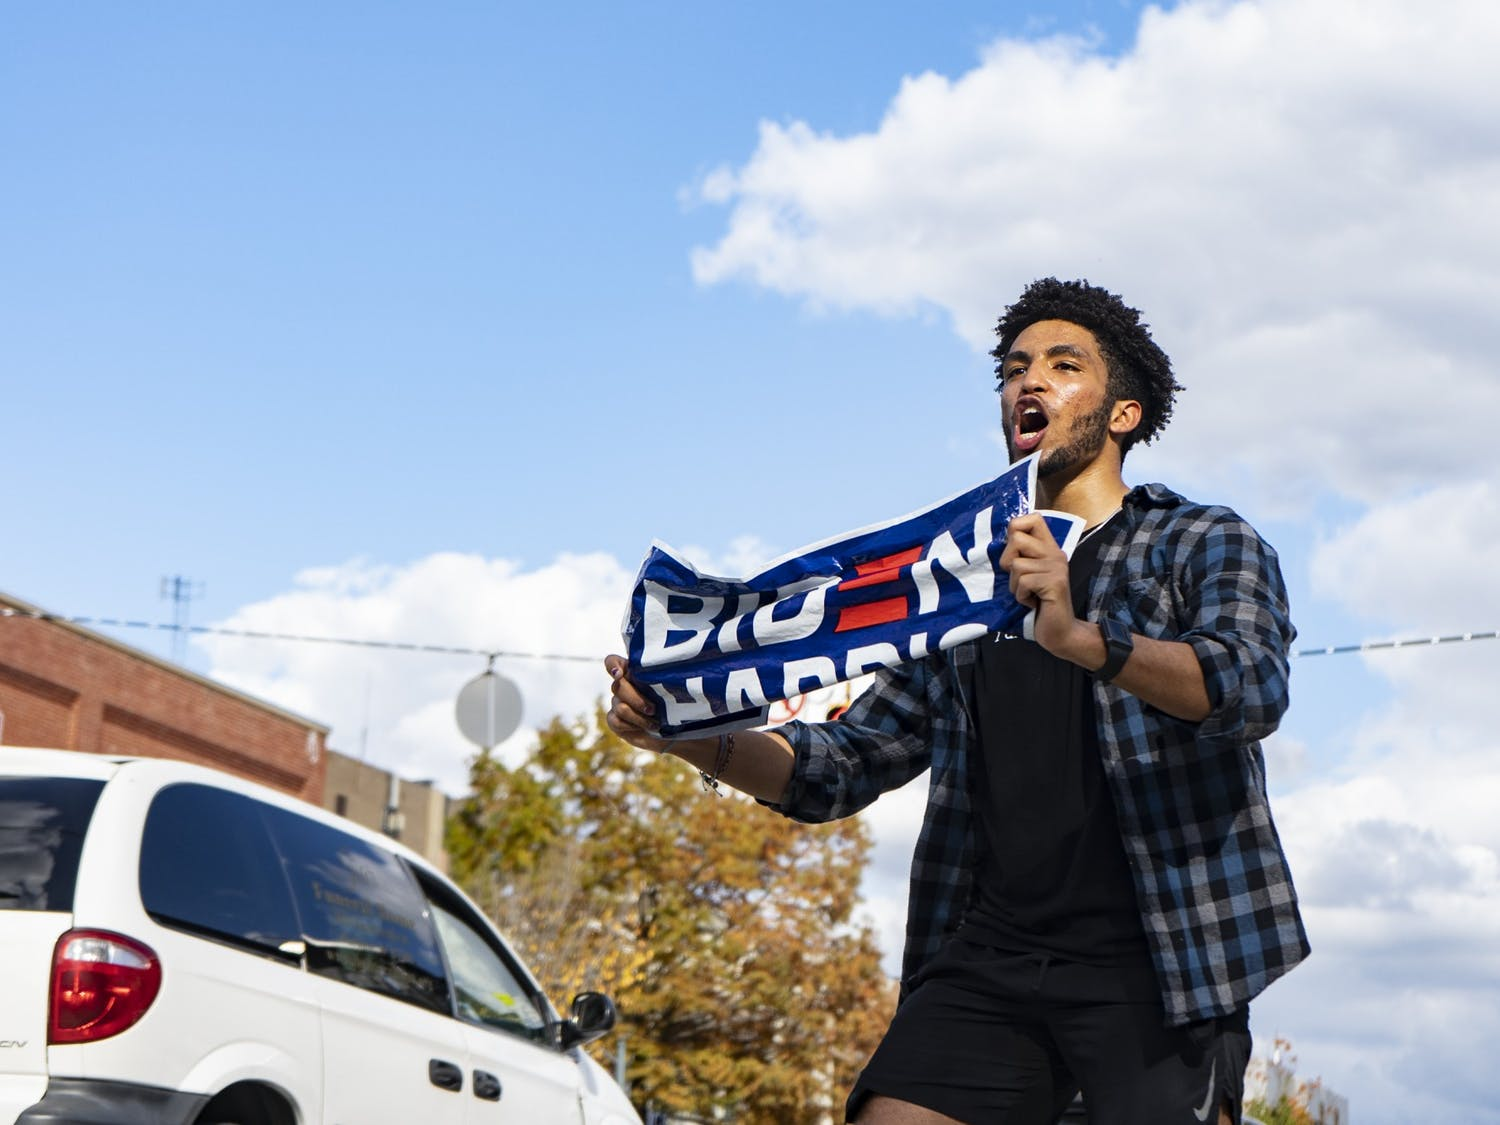 Eliam Mussie waves his Biden Harris sign at the cars on Franklin Street to get them to honk their horns and celebrate the announcement of Former Vice President Joe Biden's election to the presidency on Saturday, Nov. 7, 2020.